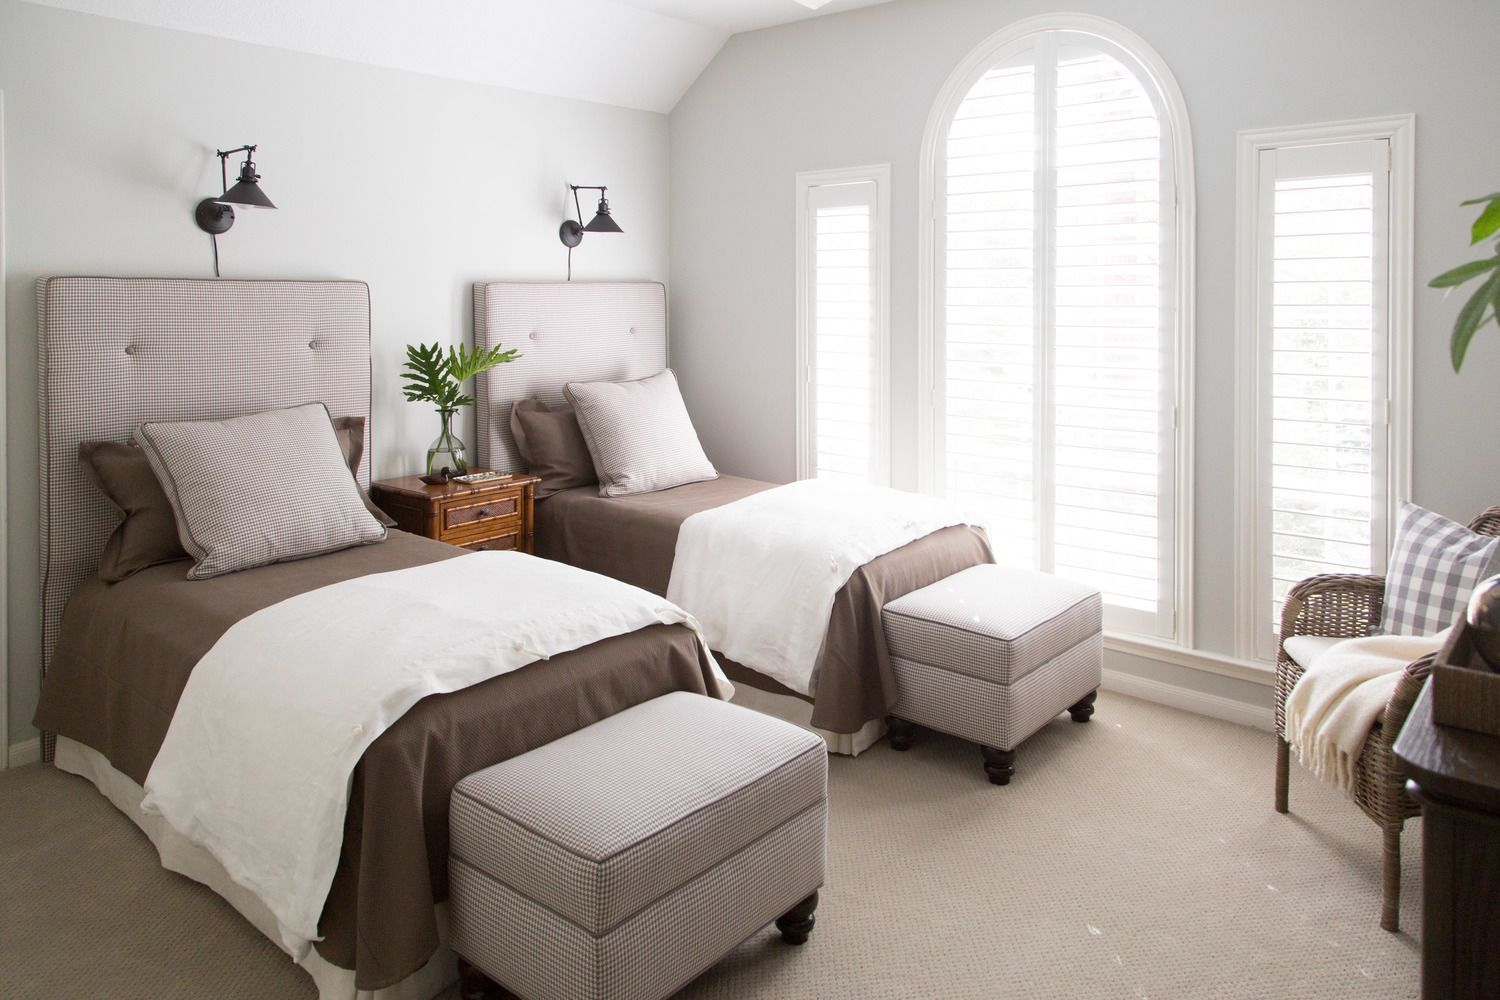 Guest Bedroom Remodel Source List With Links Twin Beds Guest